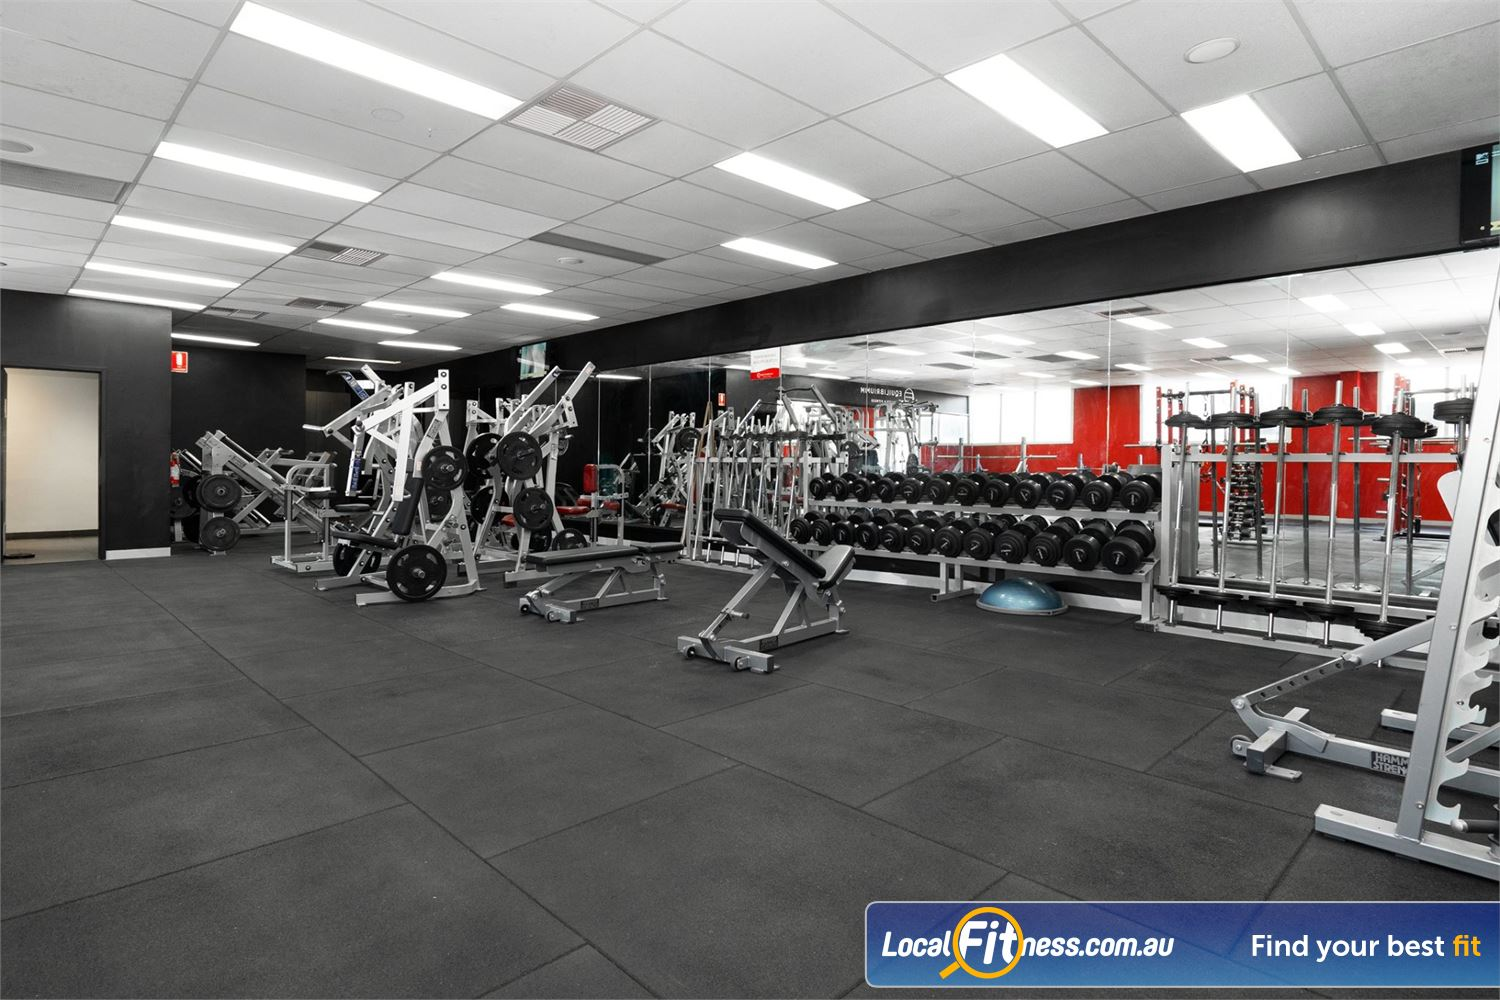 Equilibrium Health & Fitness 24/7 North Melbourne Our 24/7 Gym in North Melbourne includes a wide range of hammer strength equipment.